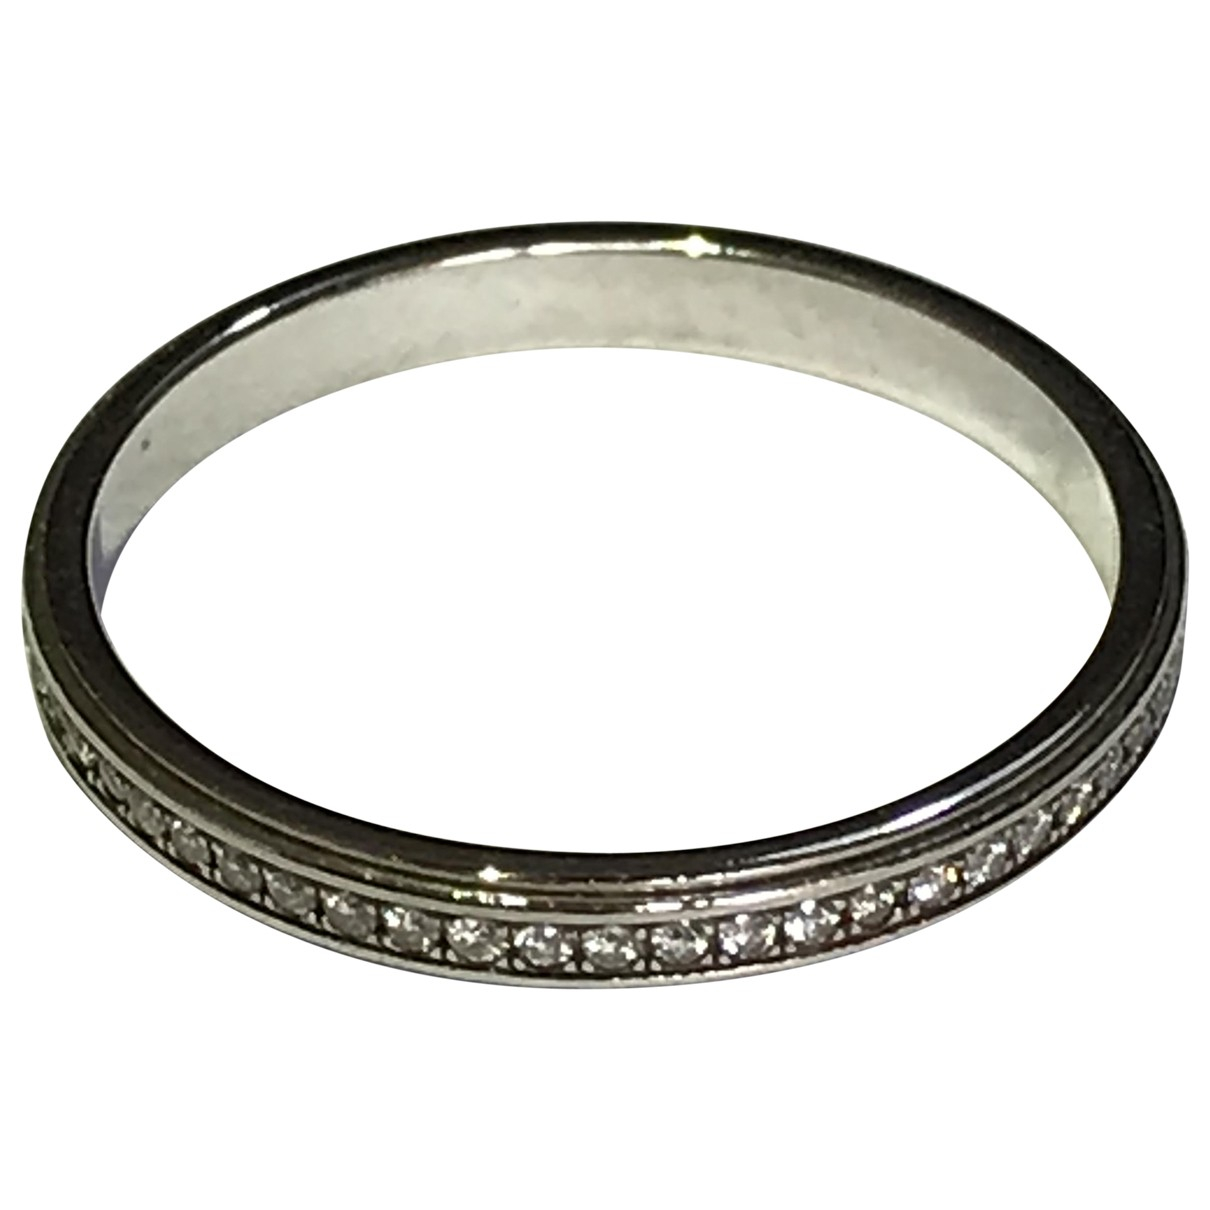 Cartier \N Ring in  Silber Platin